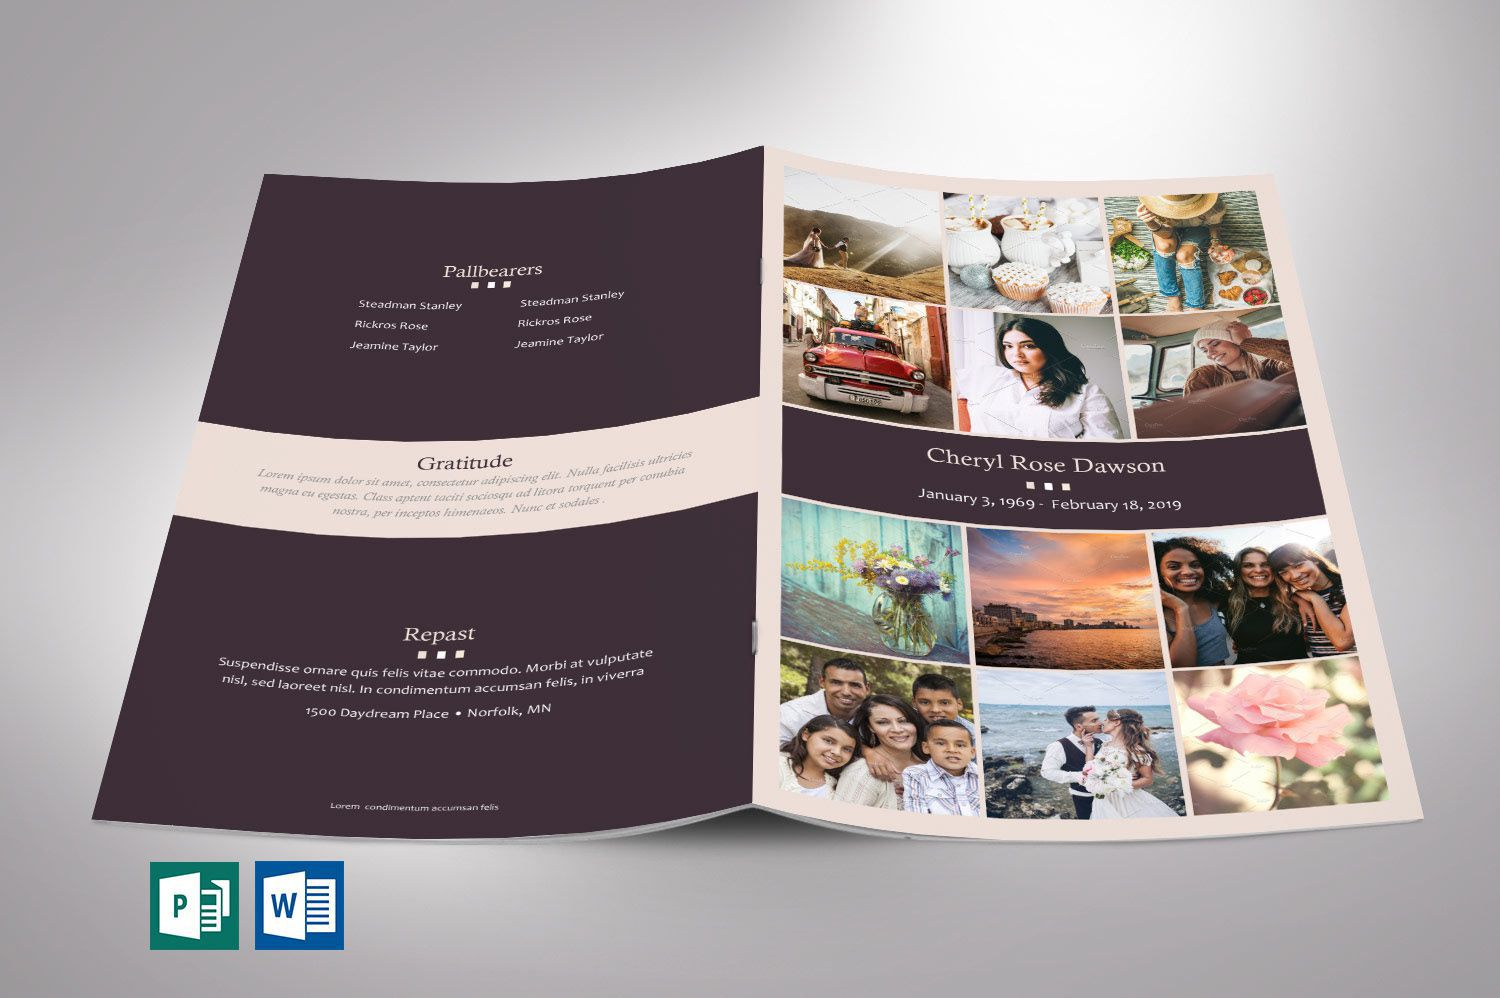 001 Beautiful Template For Funeral Program Publisher Concept Full